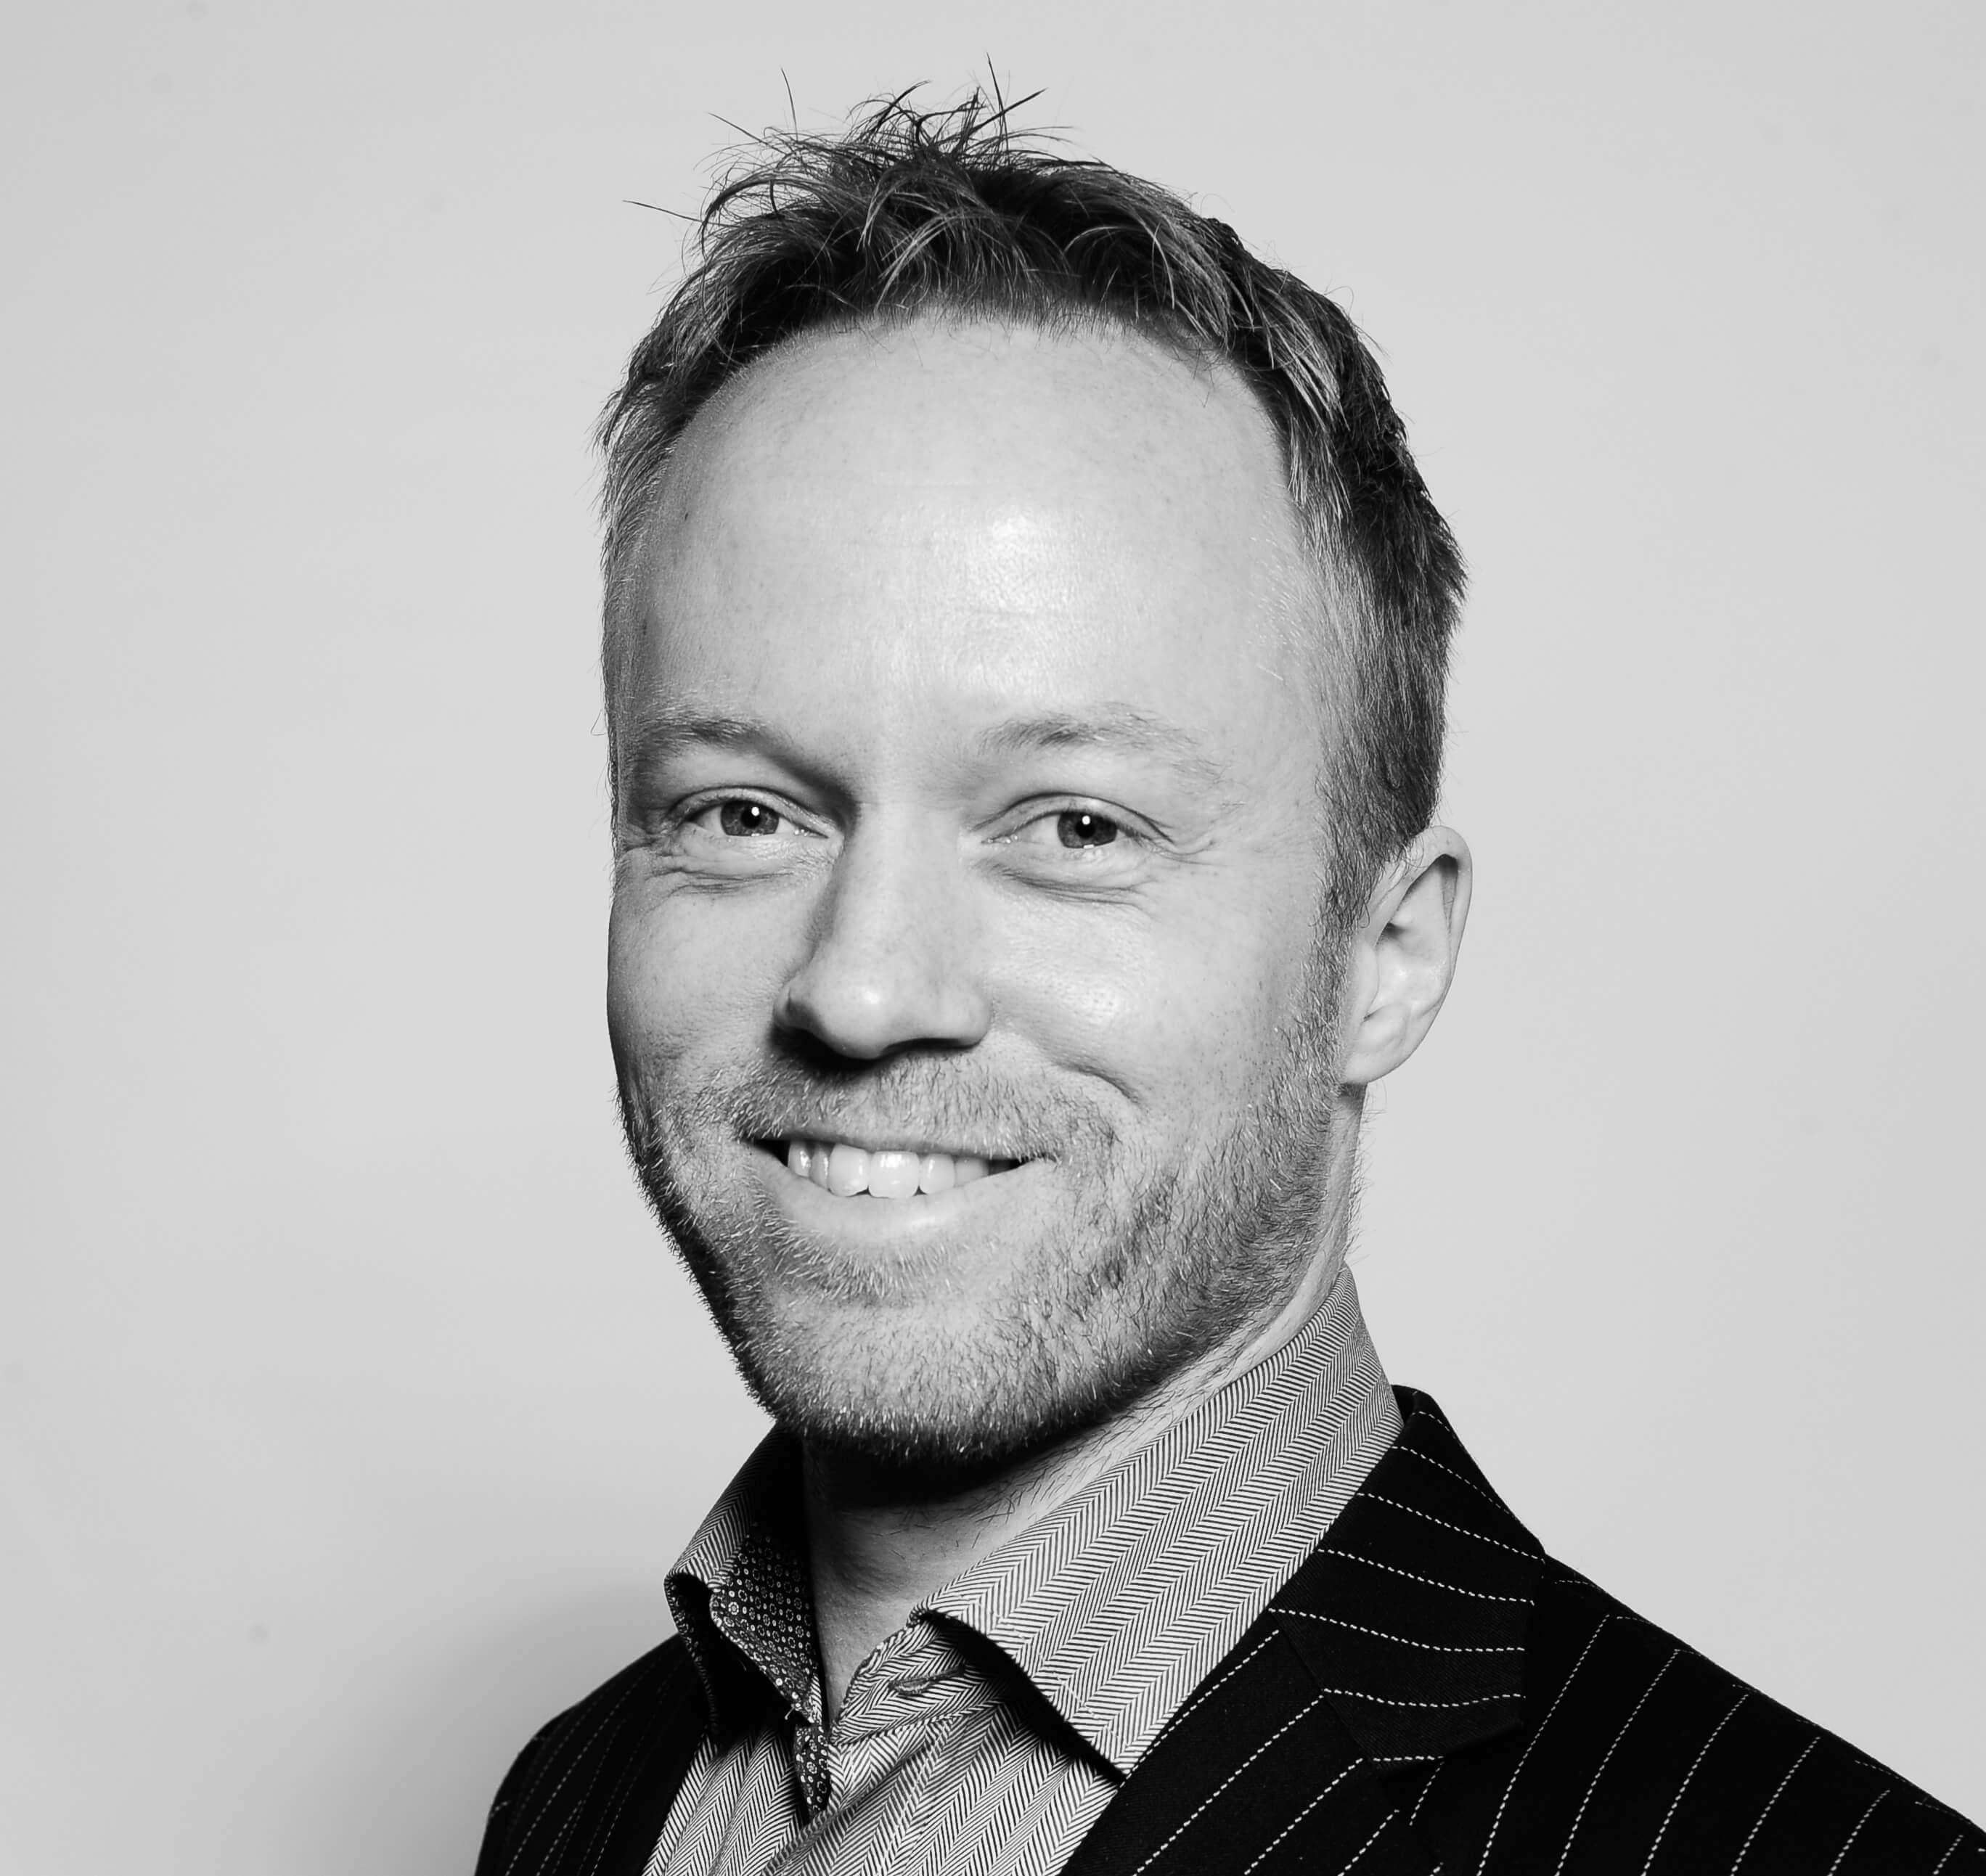 Stefan Arenbalk, chief strategy officer and co-founder of Joorschain.